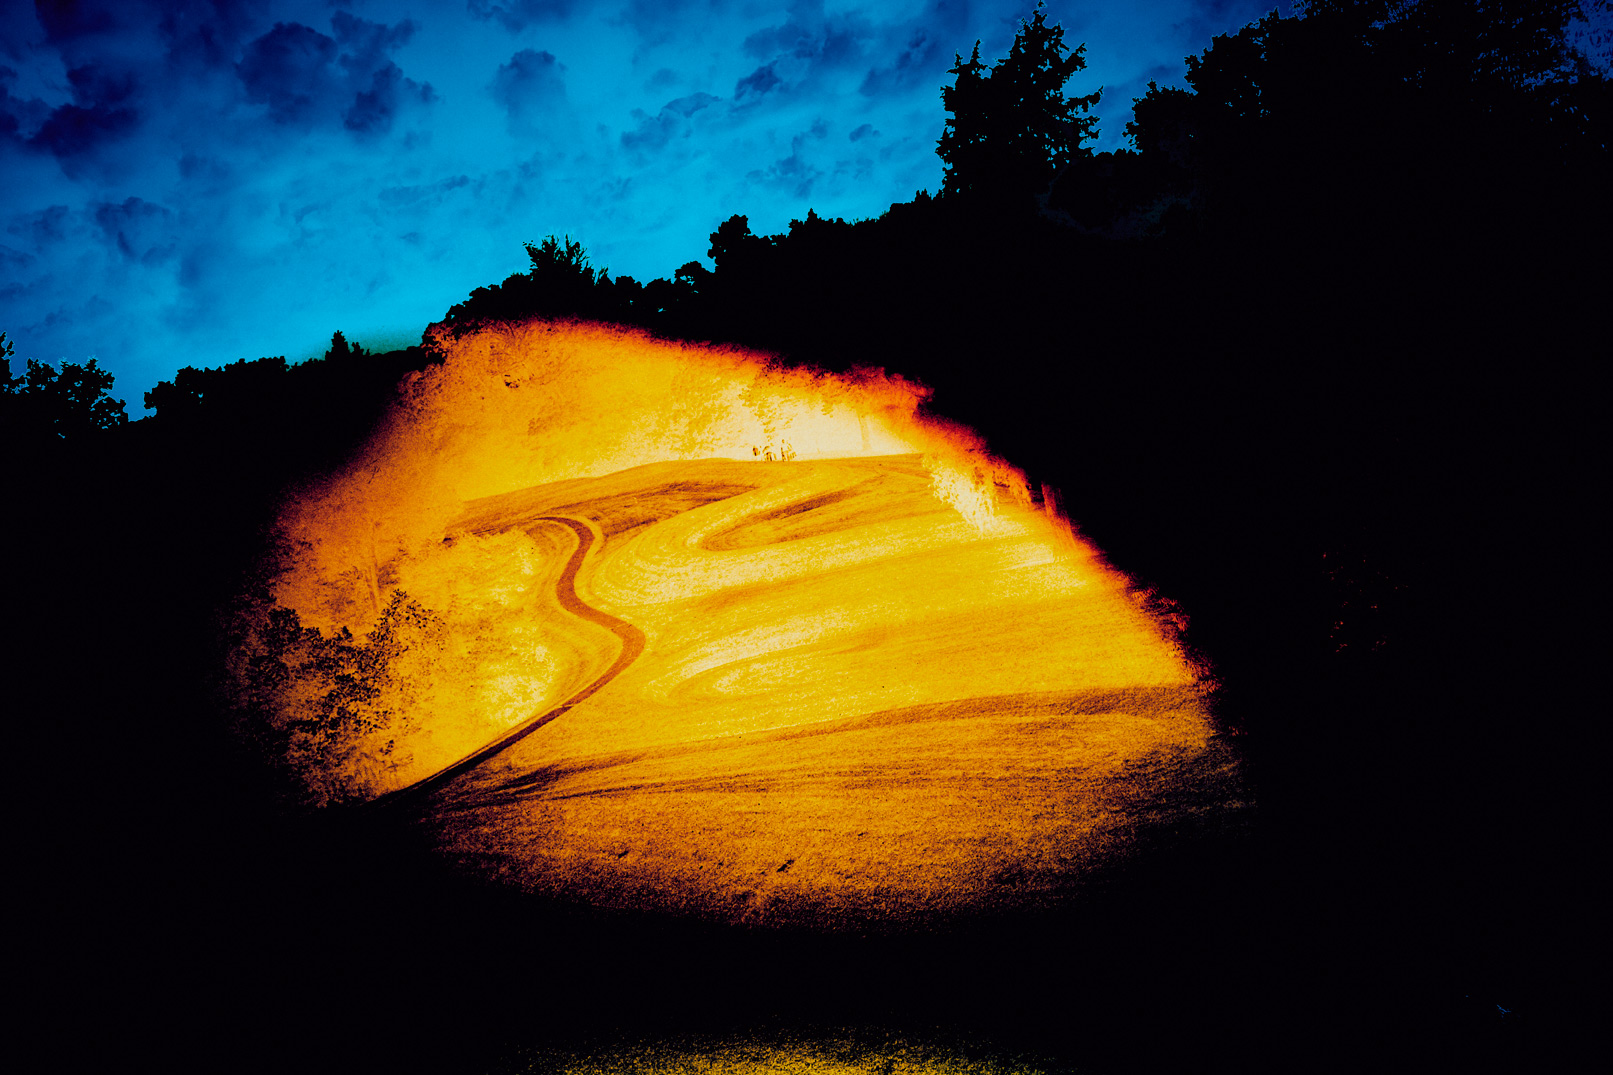 Serpent-Mound-Zachary-Bako-1